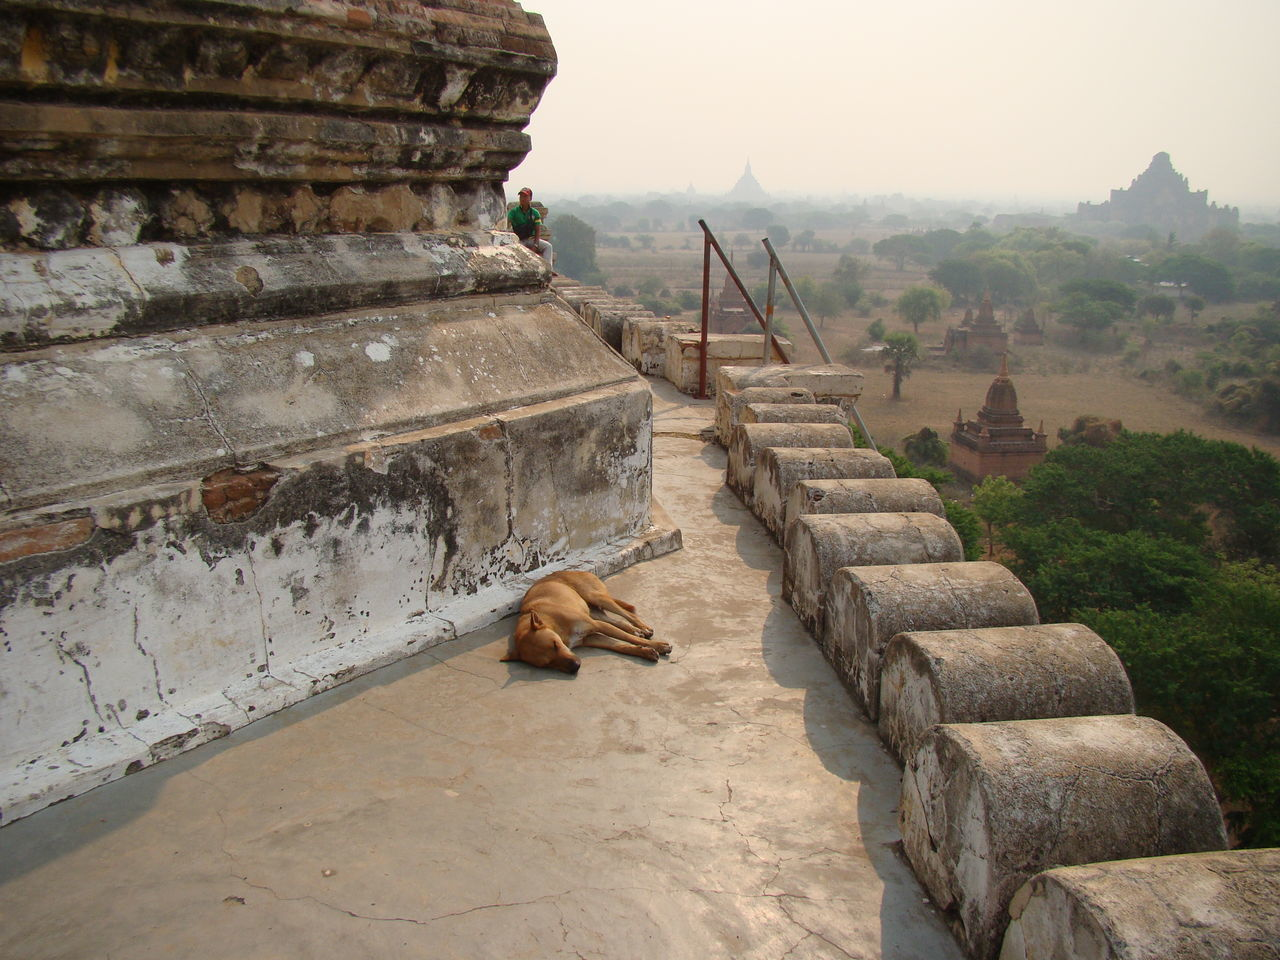 Siesta in Myanmar Animal Themes Steps Travel Destinations Outdoors Mammal Sky Architecture Water No People Place Of Worship Day Nature